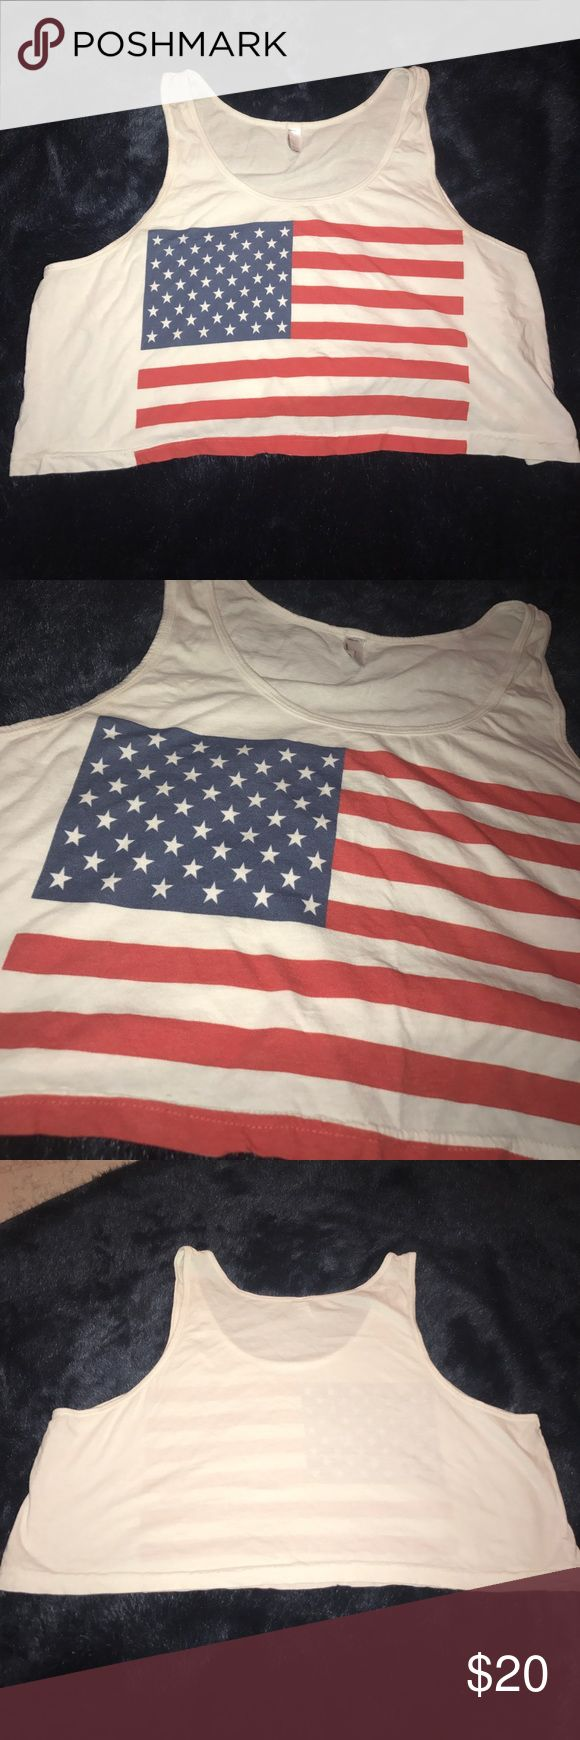 American apparel American flag crop top American Flag 🇺🇸 crop top form American Apparel. I know they are closing but this is a classic top. Wore it to Made In American Music Festival and that was the only time. Fits great and can be layered. It is a One size fits all. Am happy to post pictures wearing the item if you're interested. Shout with any questions. ⭐️ I don't remember the price. PERFECT FOR LABOR DAY. WILLING TO DROP PRICE. American Apparel Tops Crop Tops